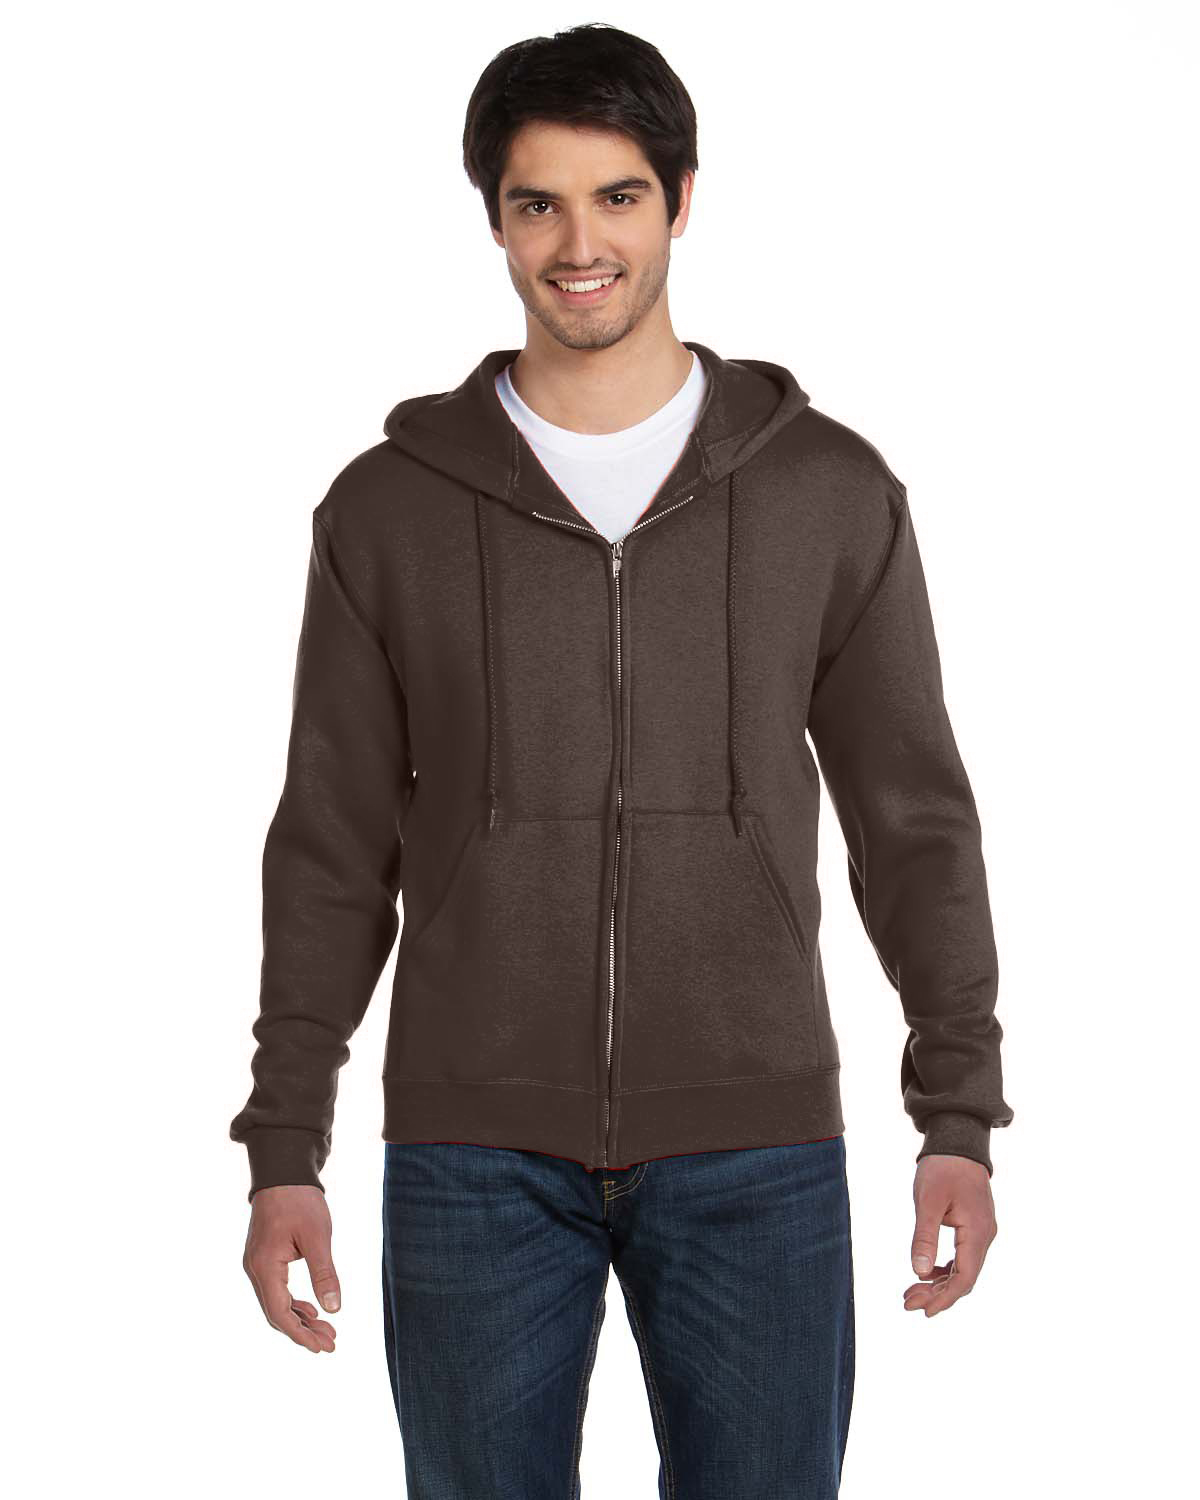 Fruit of the Loom 82230 Men 12 oz. Supercotton 70/30 FullZip Hood Chocolate at GotApparel